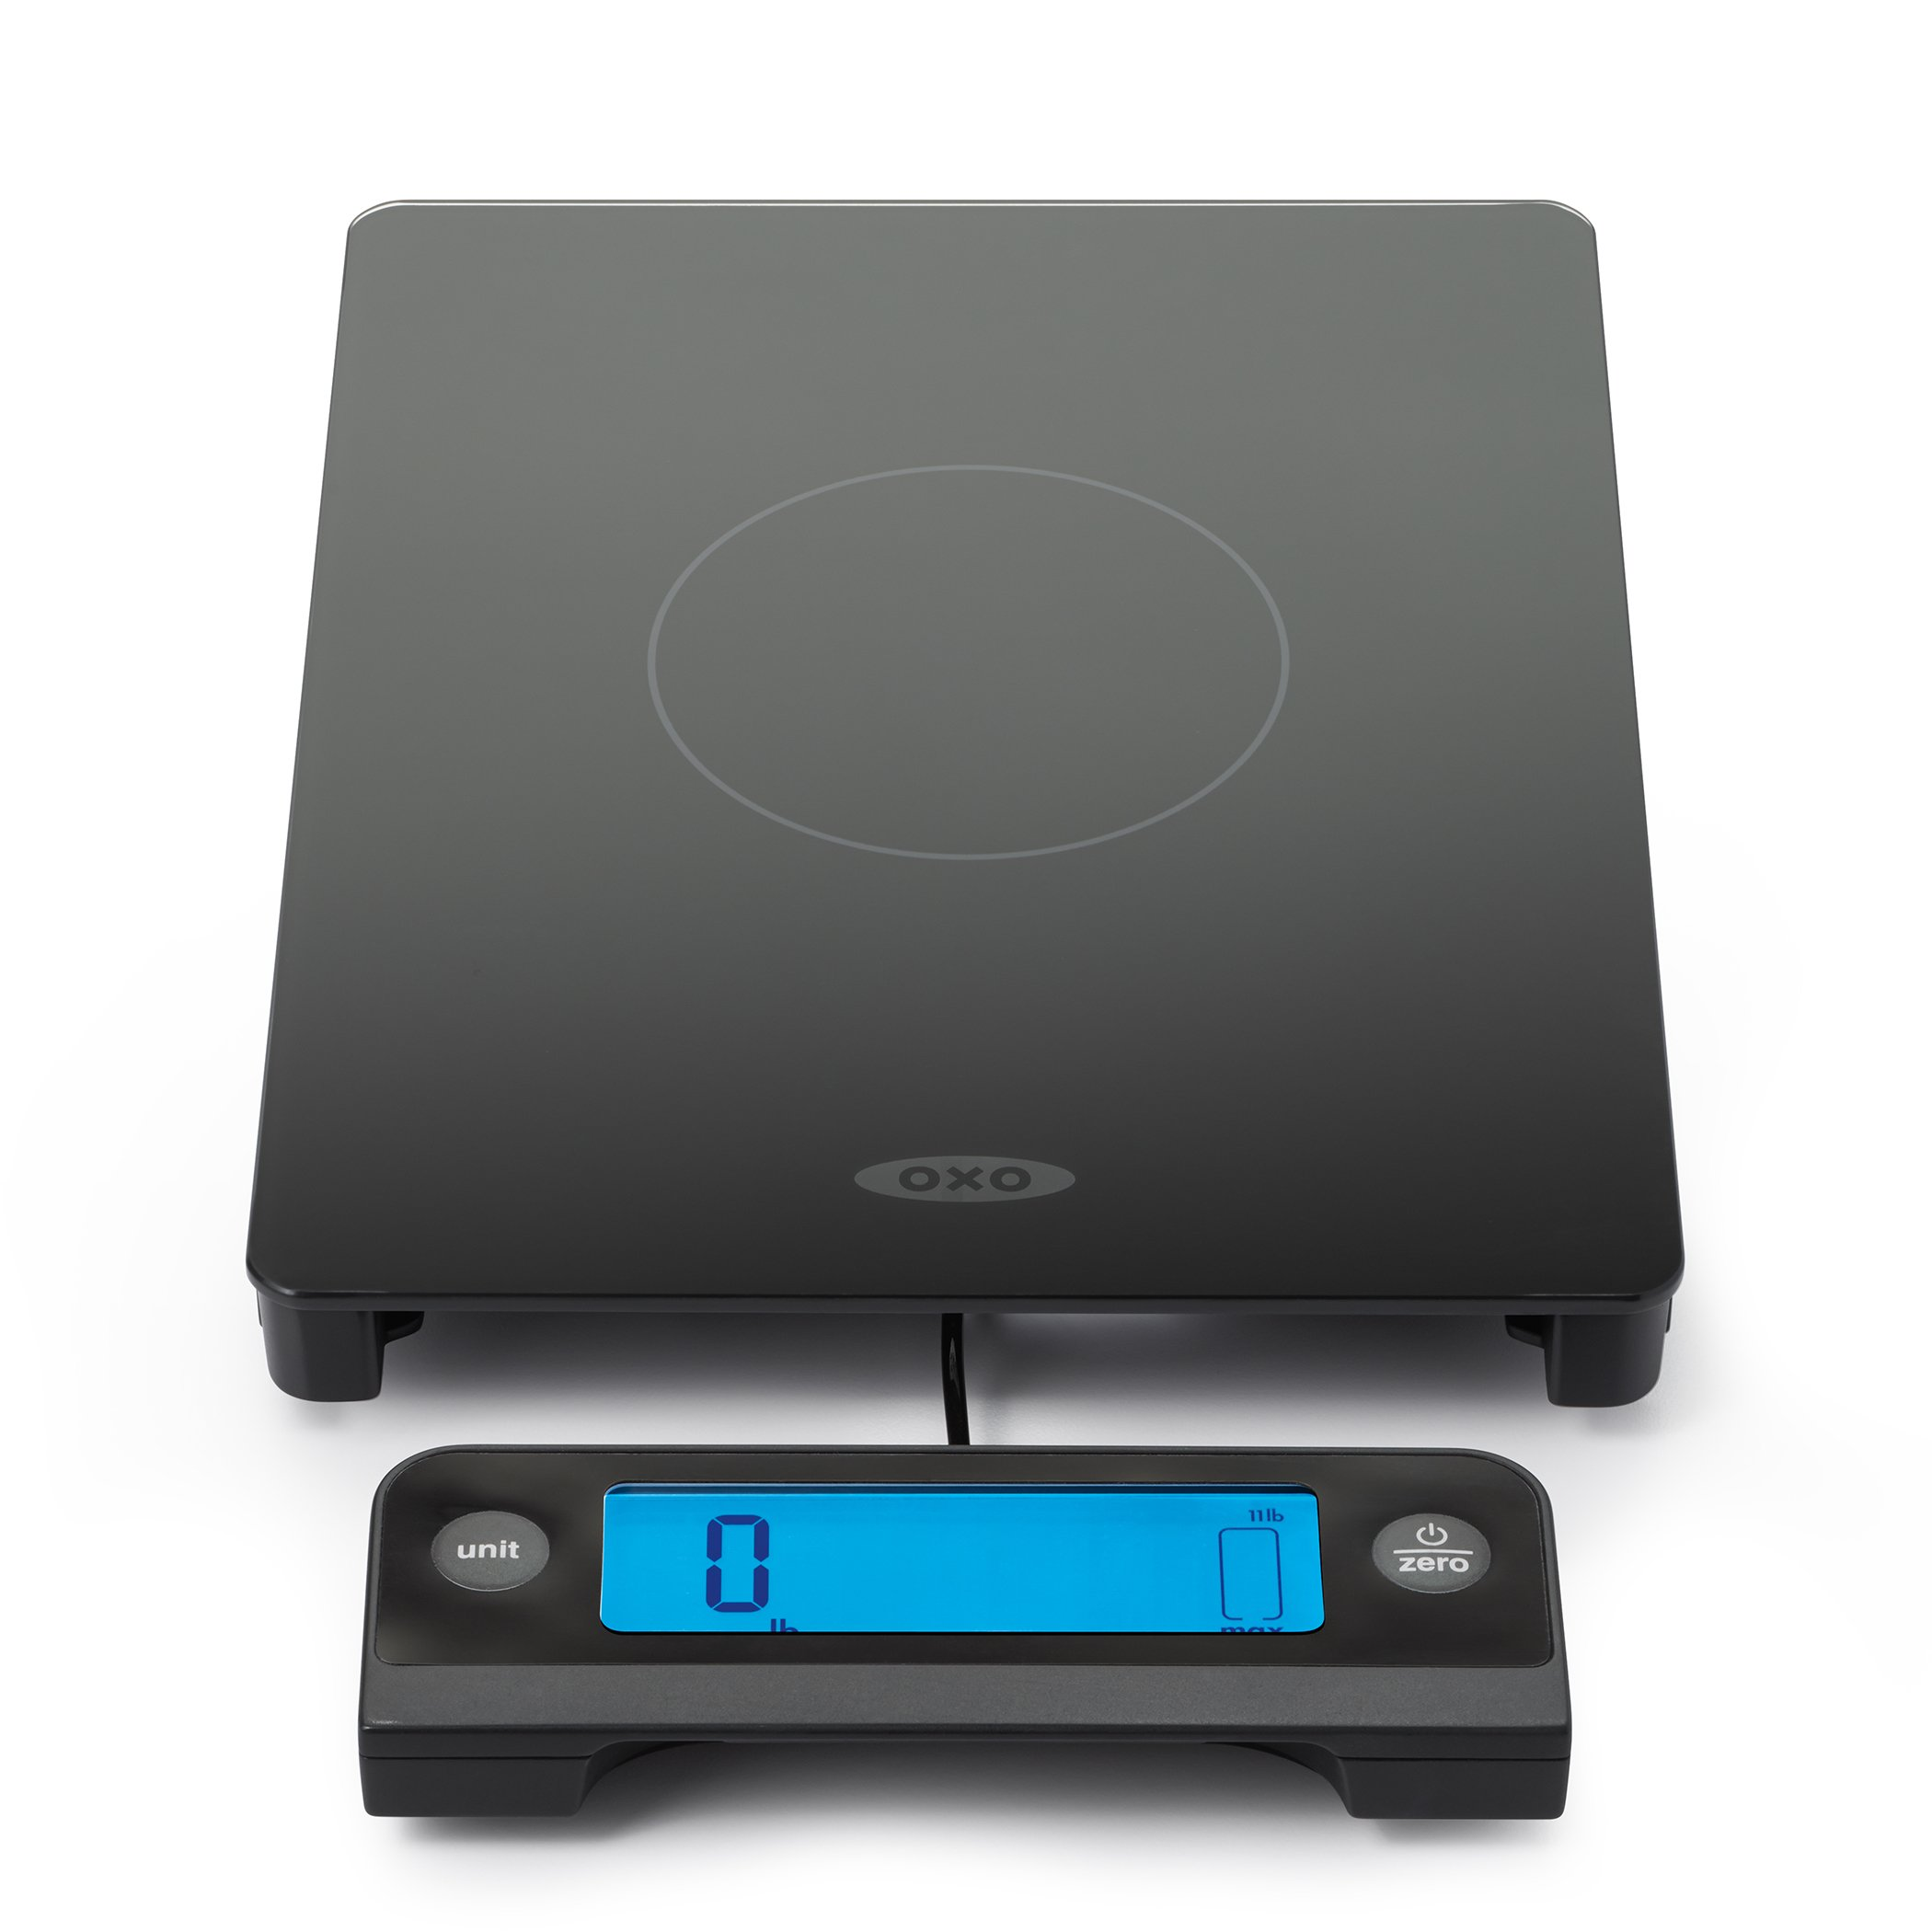 OXO Good Grips 11 Lb Glass Scale with Pull-Out Display by OXO